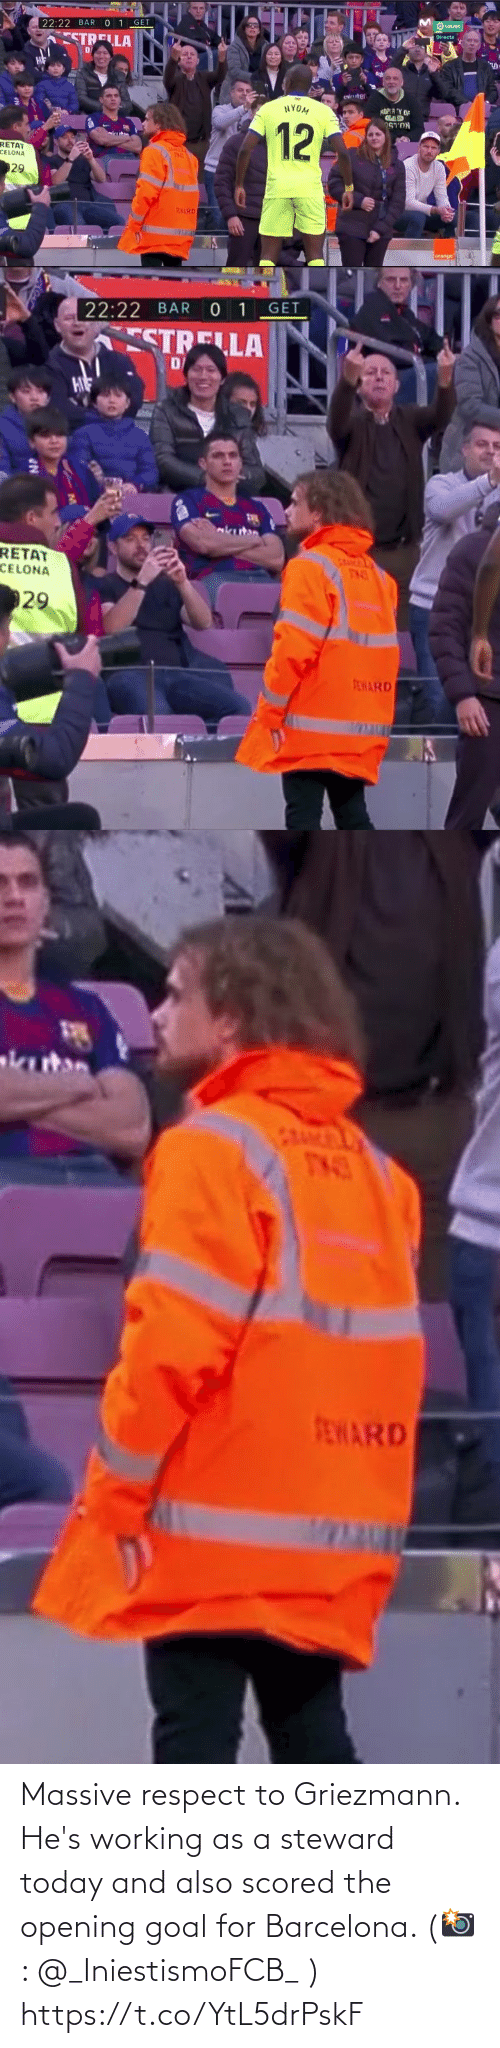 respect: Massive respect to Griezmann. He's working as a steward today and also scored the opening goal for Barcelona.   (📸: @_IniestismoFCB_ ) https://t.co/YtL5drPskF